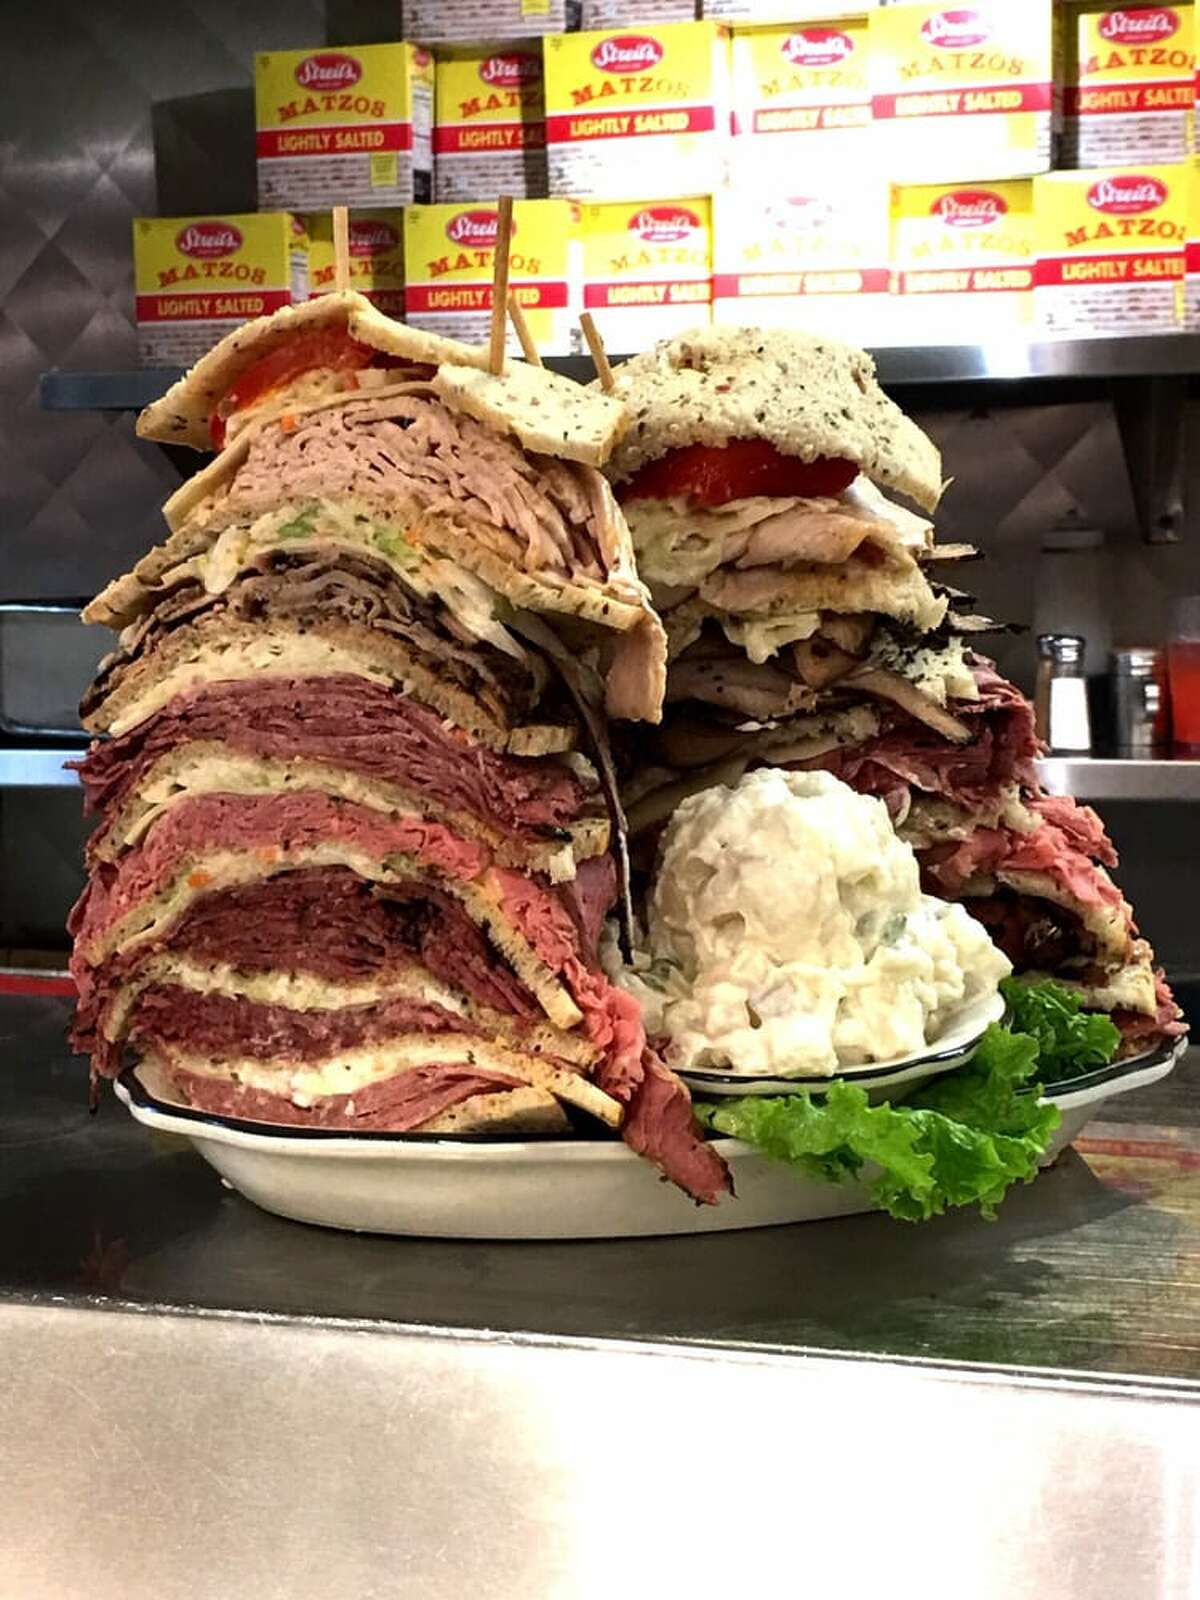 Where: Kenny & Ziggy's New York DelicatessenChallenge: The Zellagabetsky - In one sitting, finish an eight-decker sandwich on rye with corned beef, pastrami, turkey roast beef, salami, tongue, and Swiss cheese. Sides include coleslaw and Russian dressing.Cost: $65.00Reward: A free slice of cheesecake. Photo source: Yelp / Cindy S.